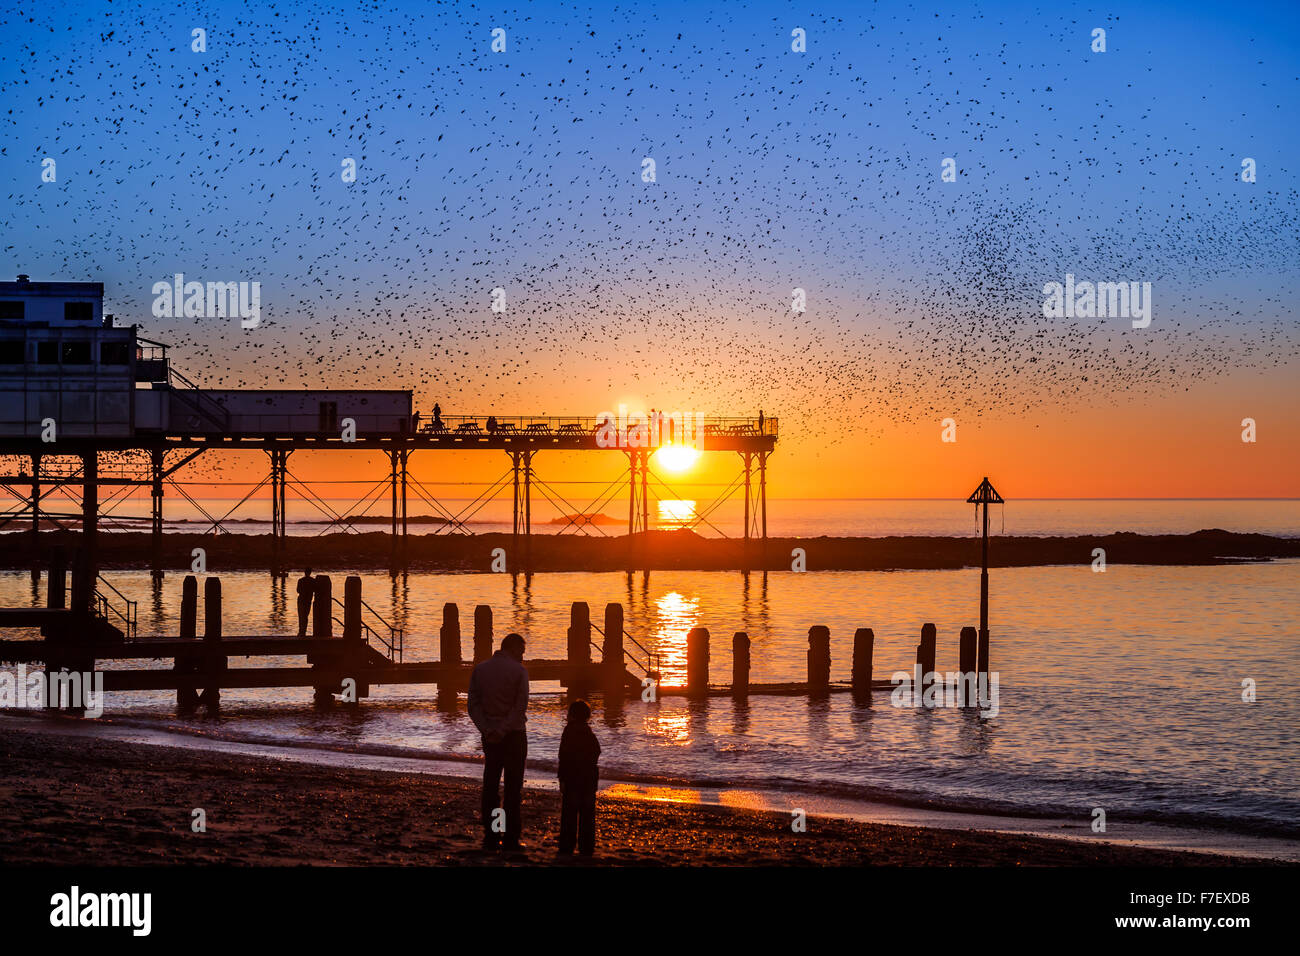 starling murmuration over Aberystwyth pier at sunset - Stock Image